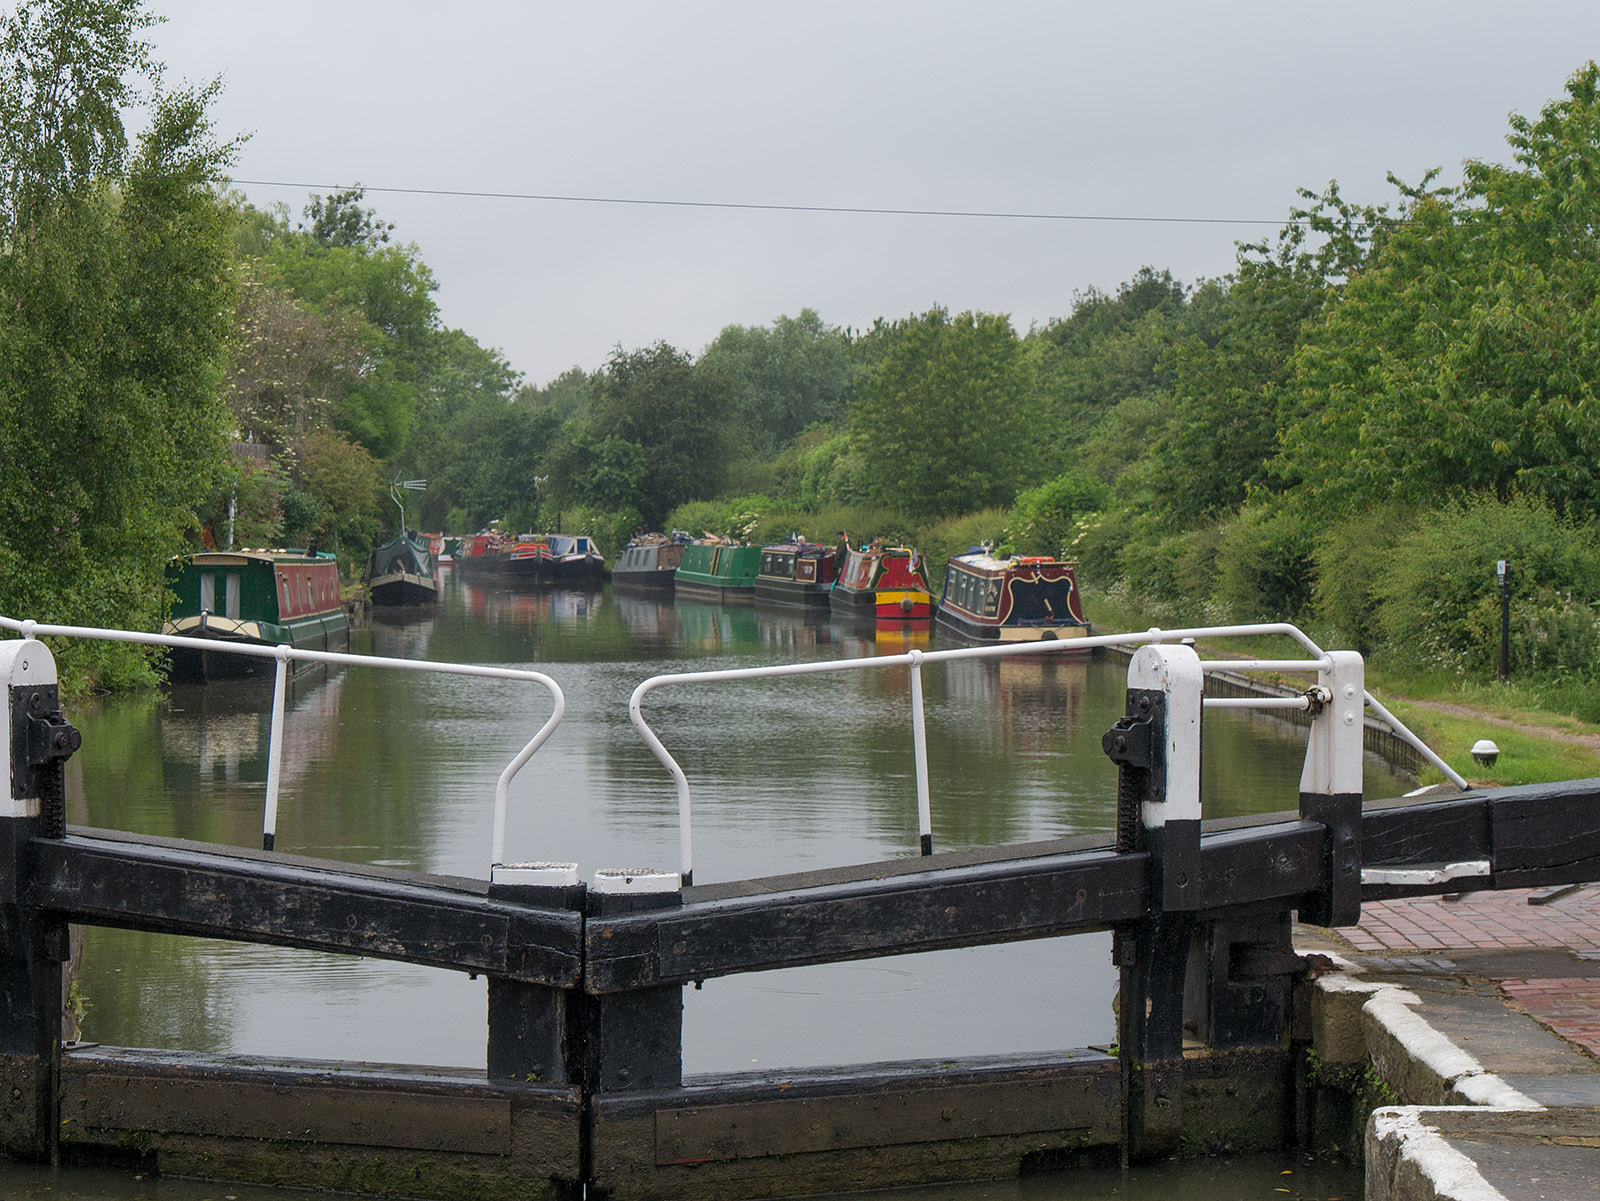 Looking ahead from the lock at Fenny Stratford